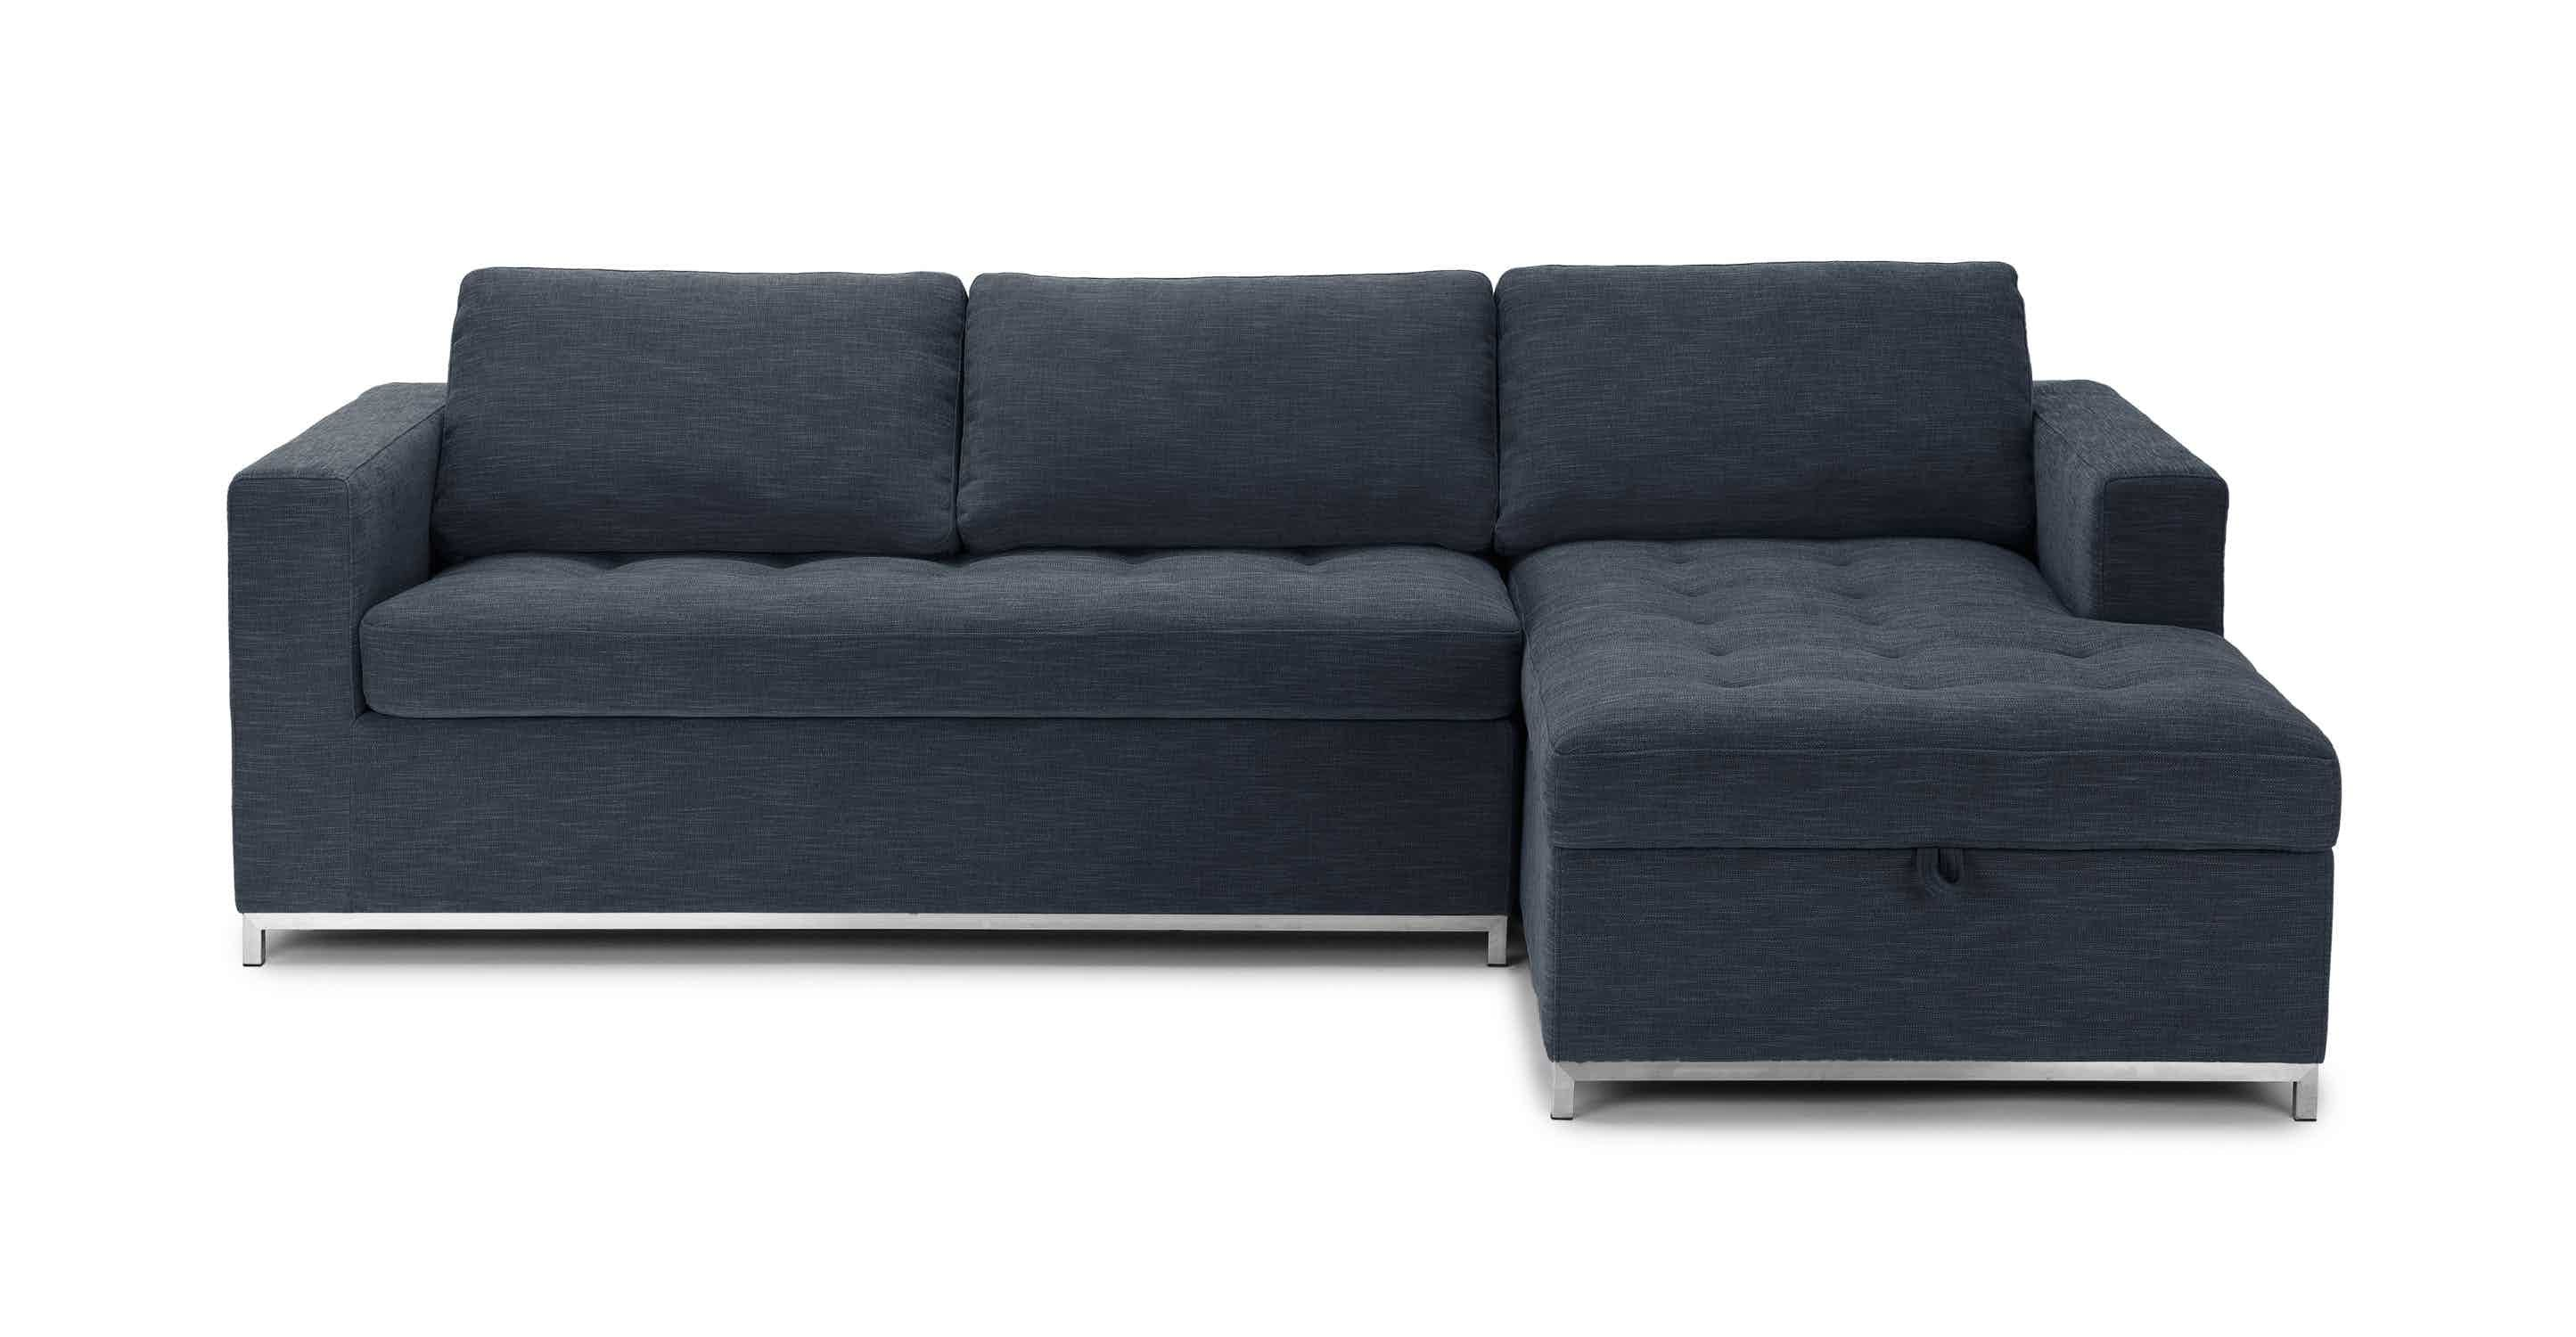 Soma Midnight Blue Right Sofa Bed